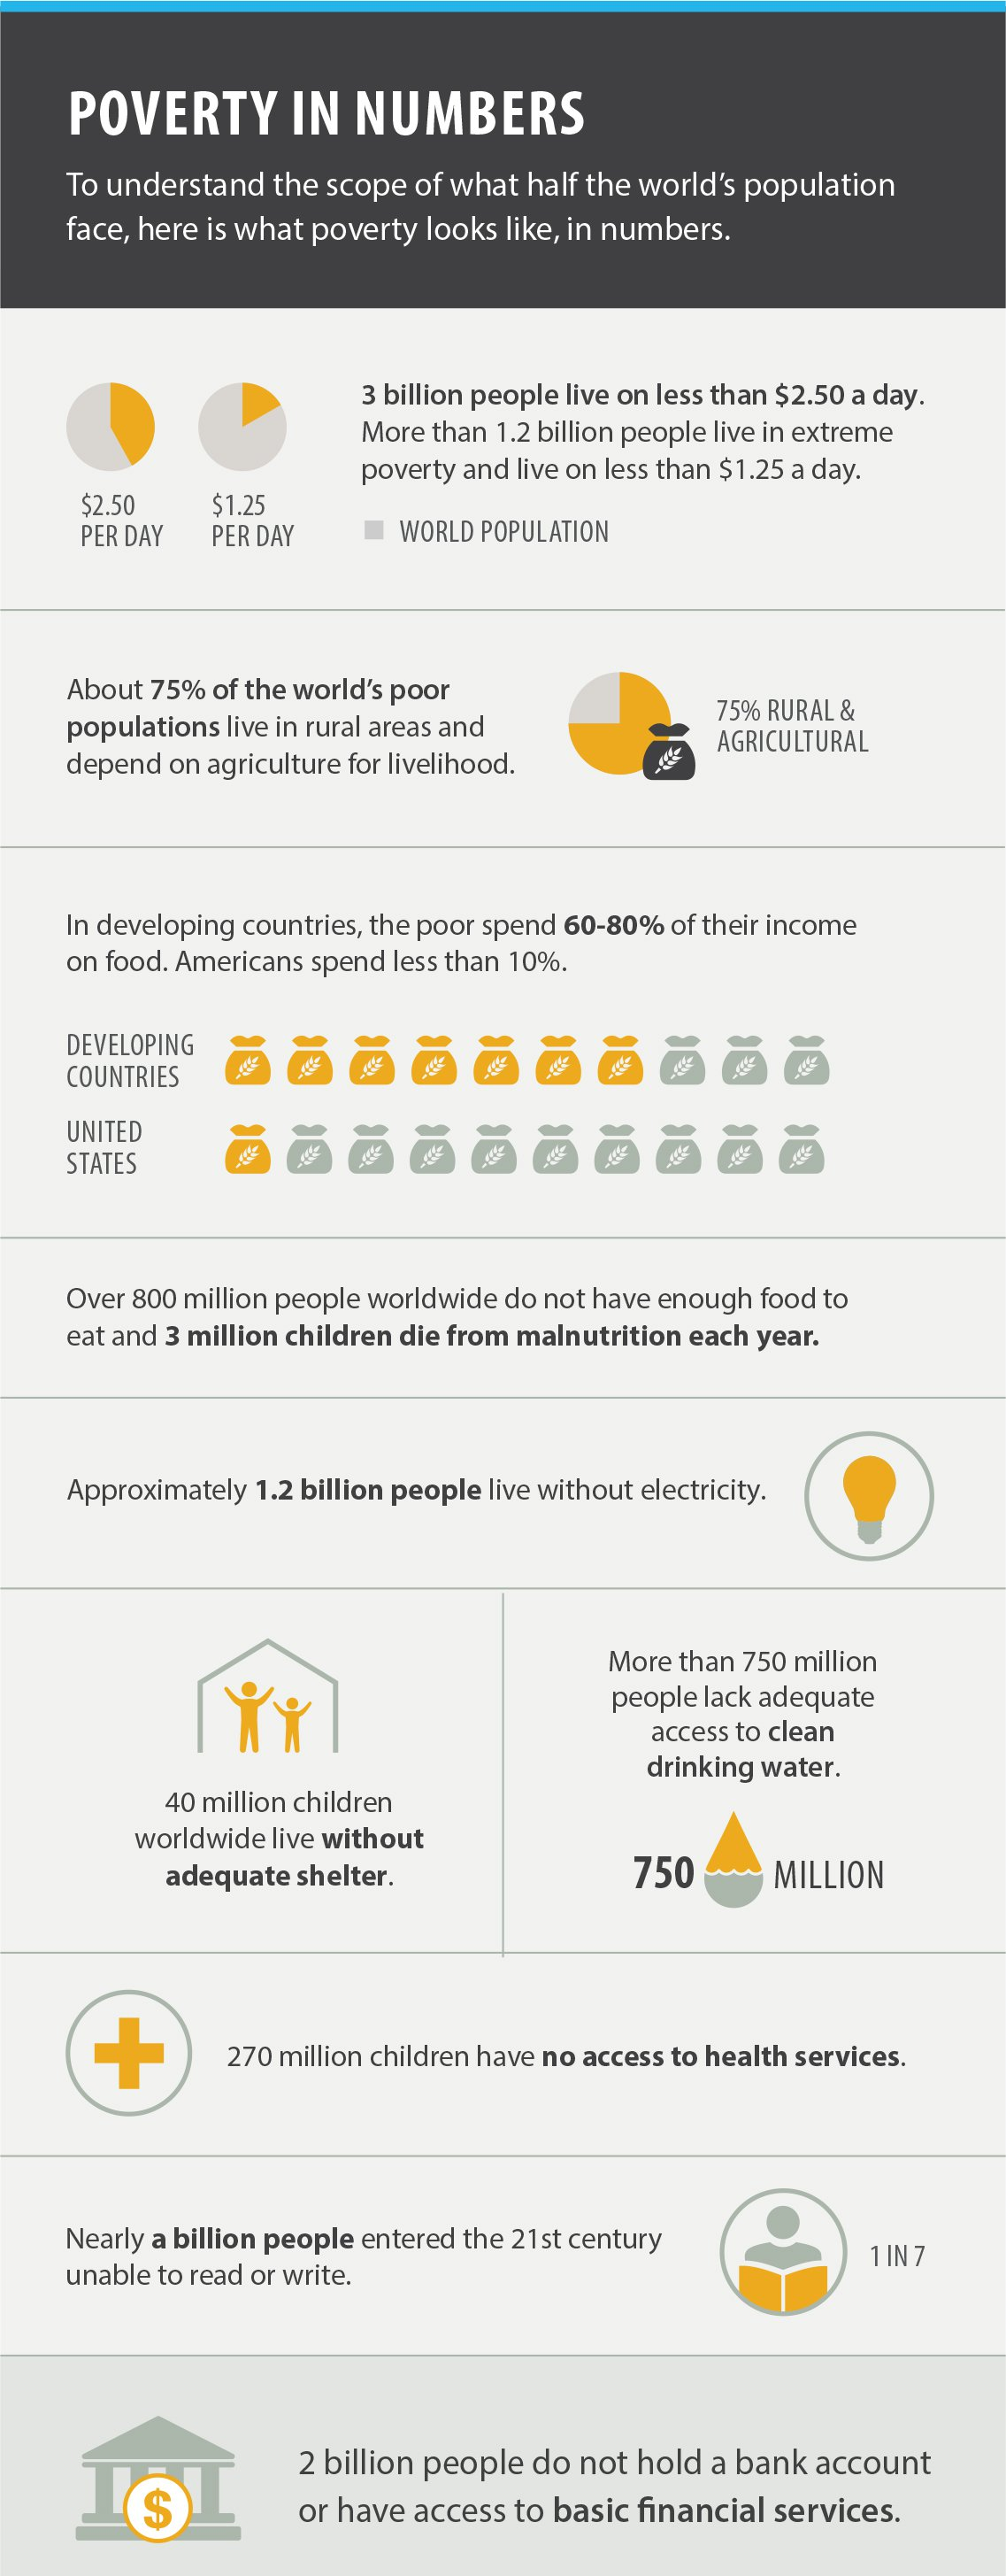 Poverty in Numbers infographic